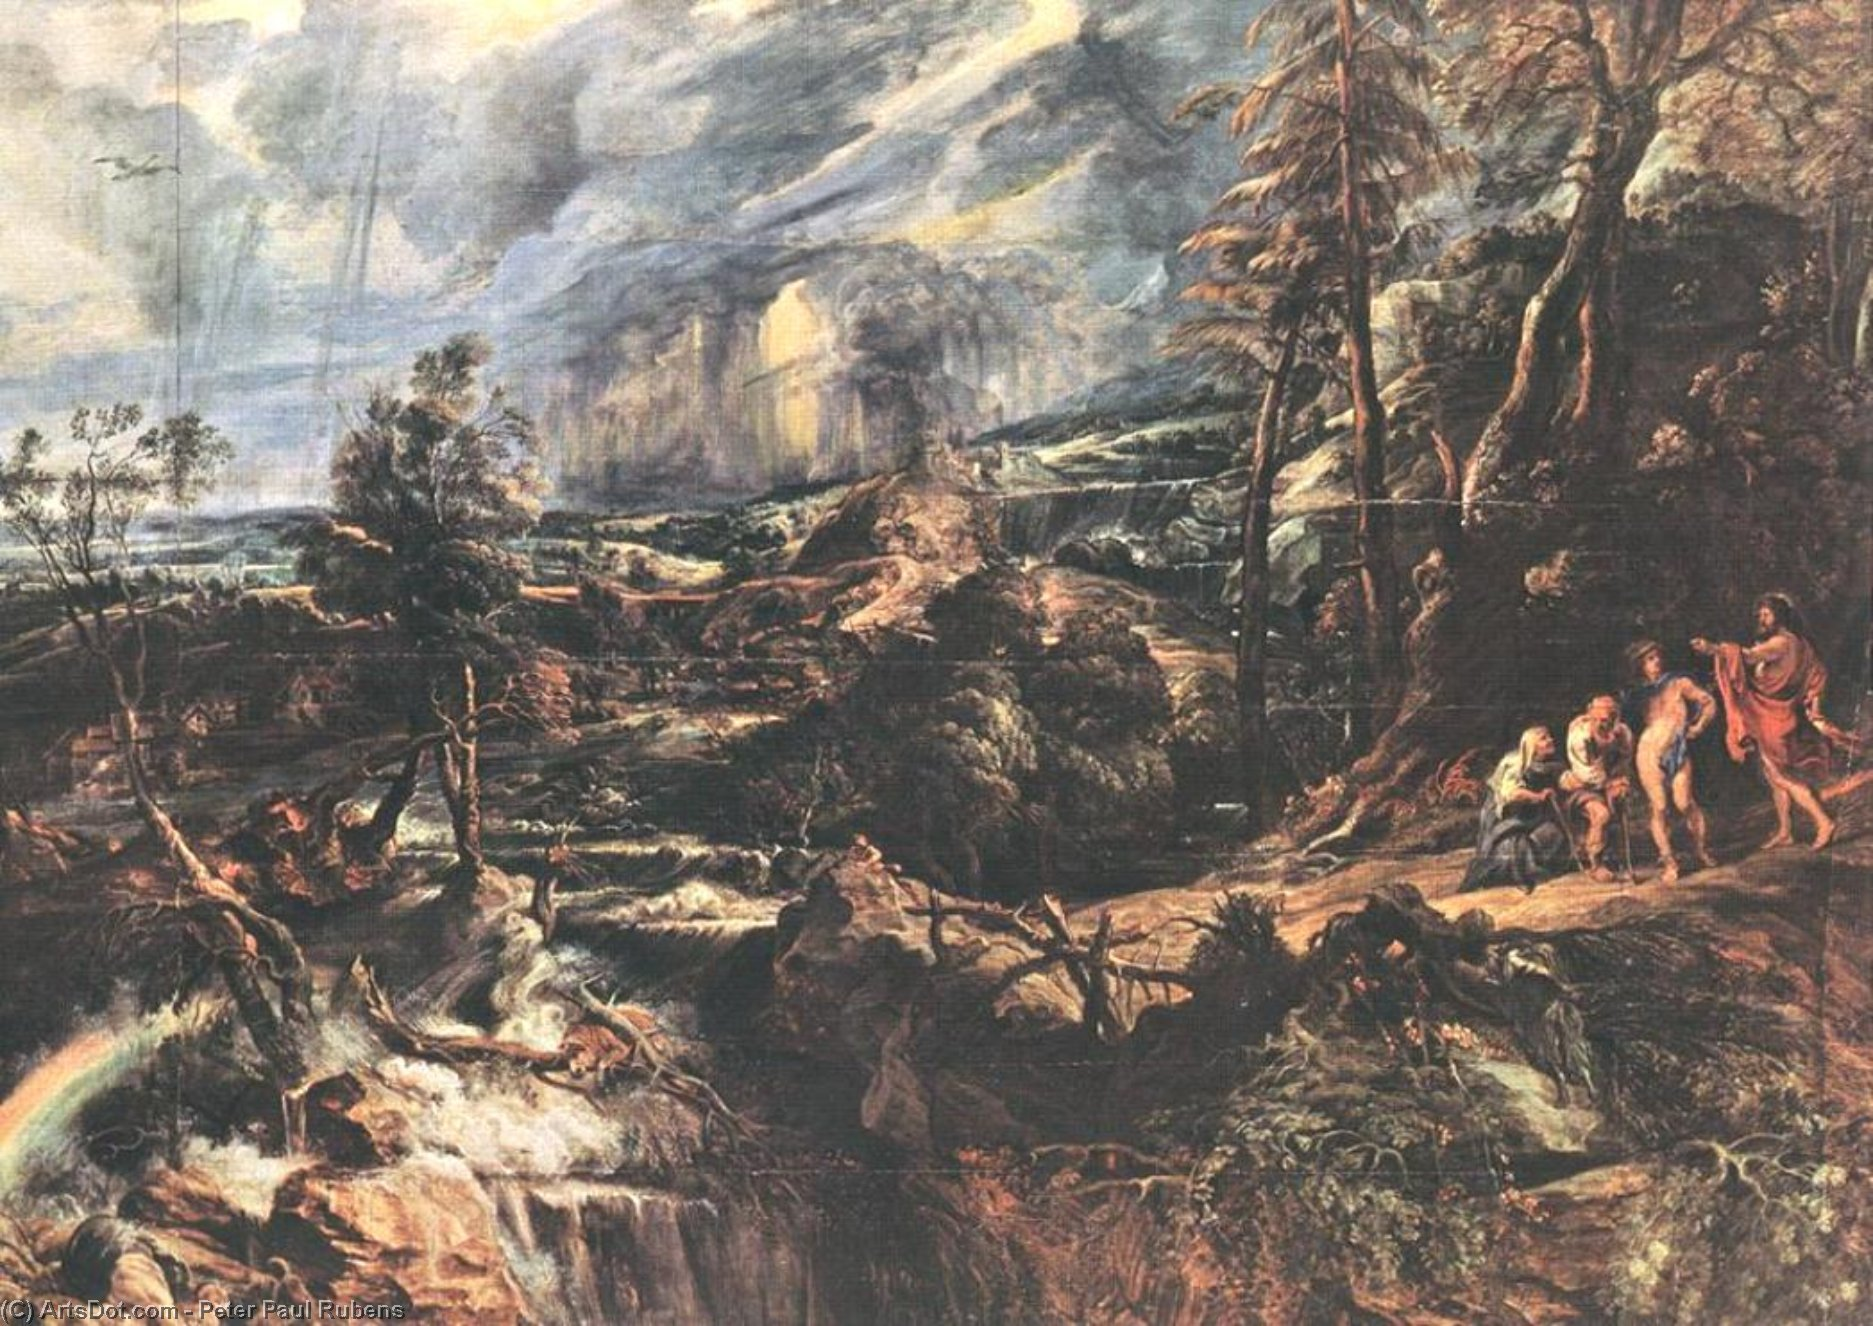 Wikioo.org - The Encyclopedia of Fine Arts - Painting, Artwork by Peter Paul Rubens - Stormy Landscape